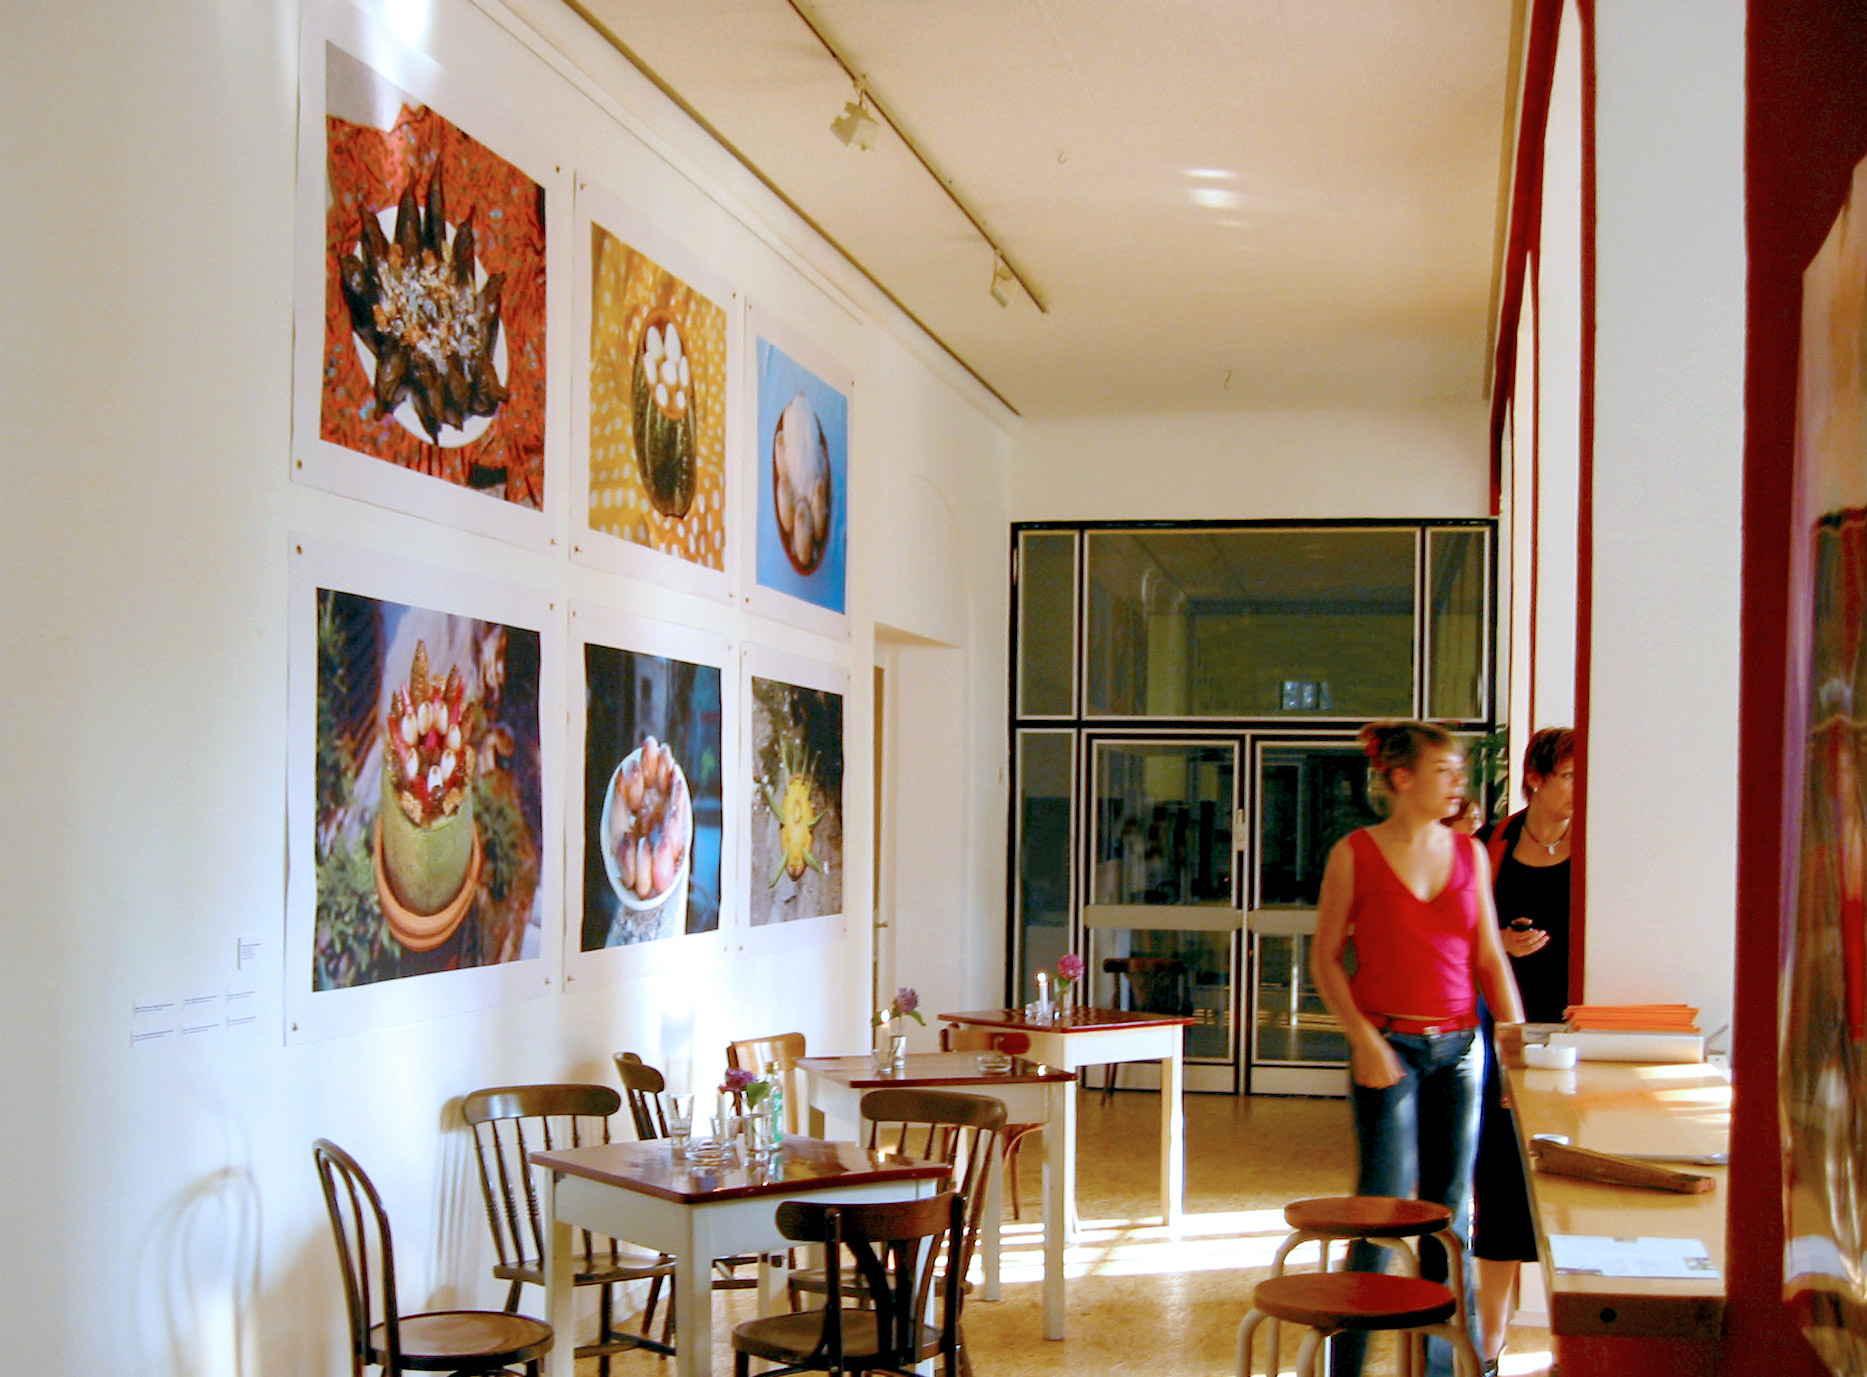 View of the photographic series Dishes for the Dead, as part of the Input exhibition, in Kunsthaus Essen, Germany, 2005